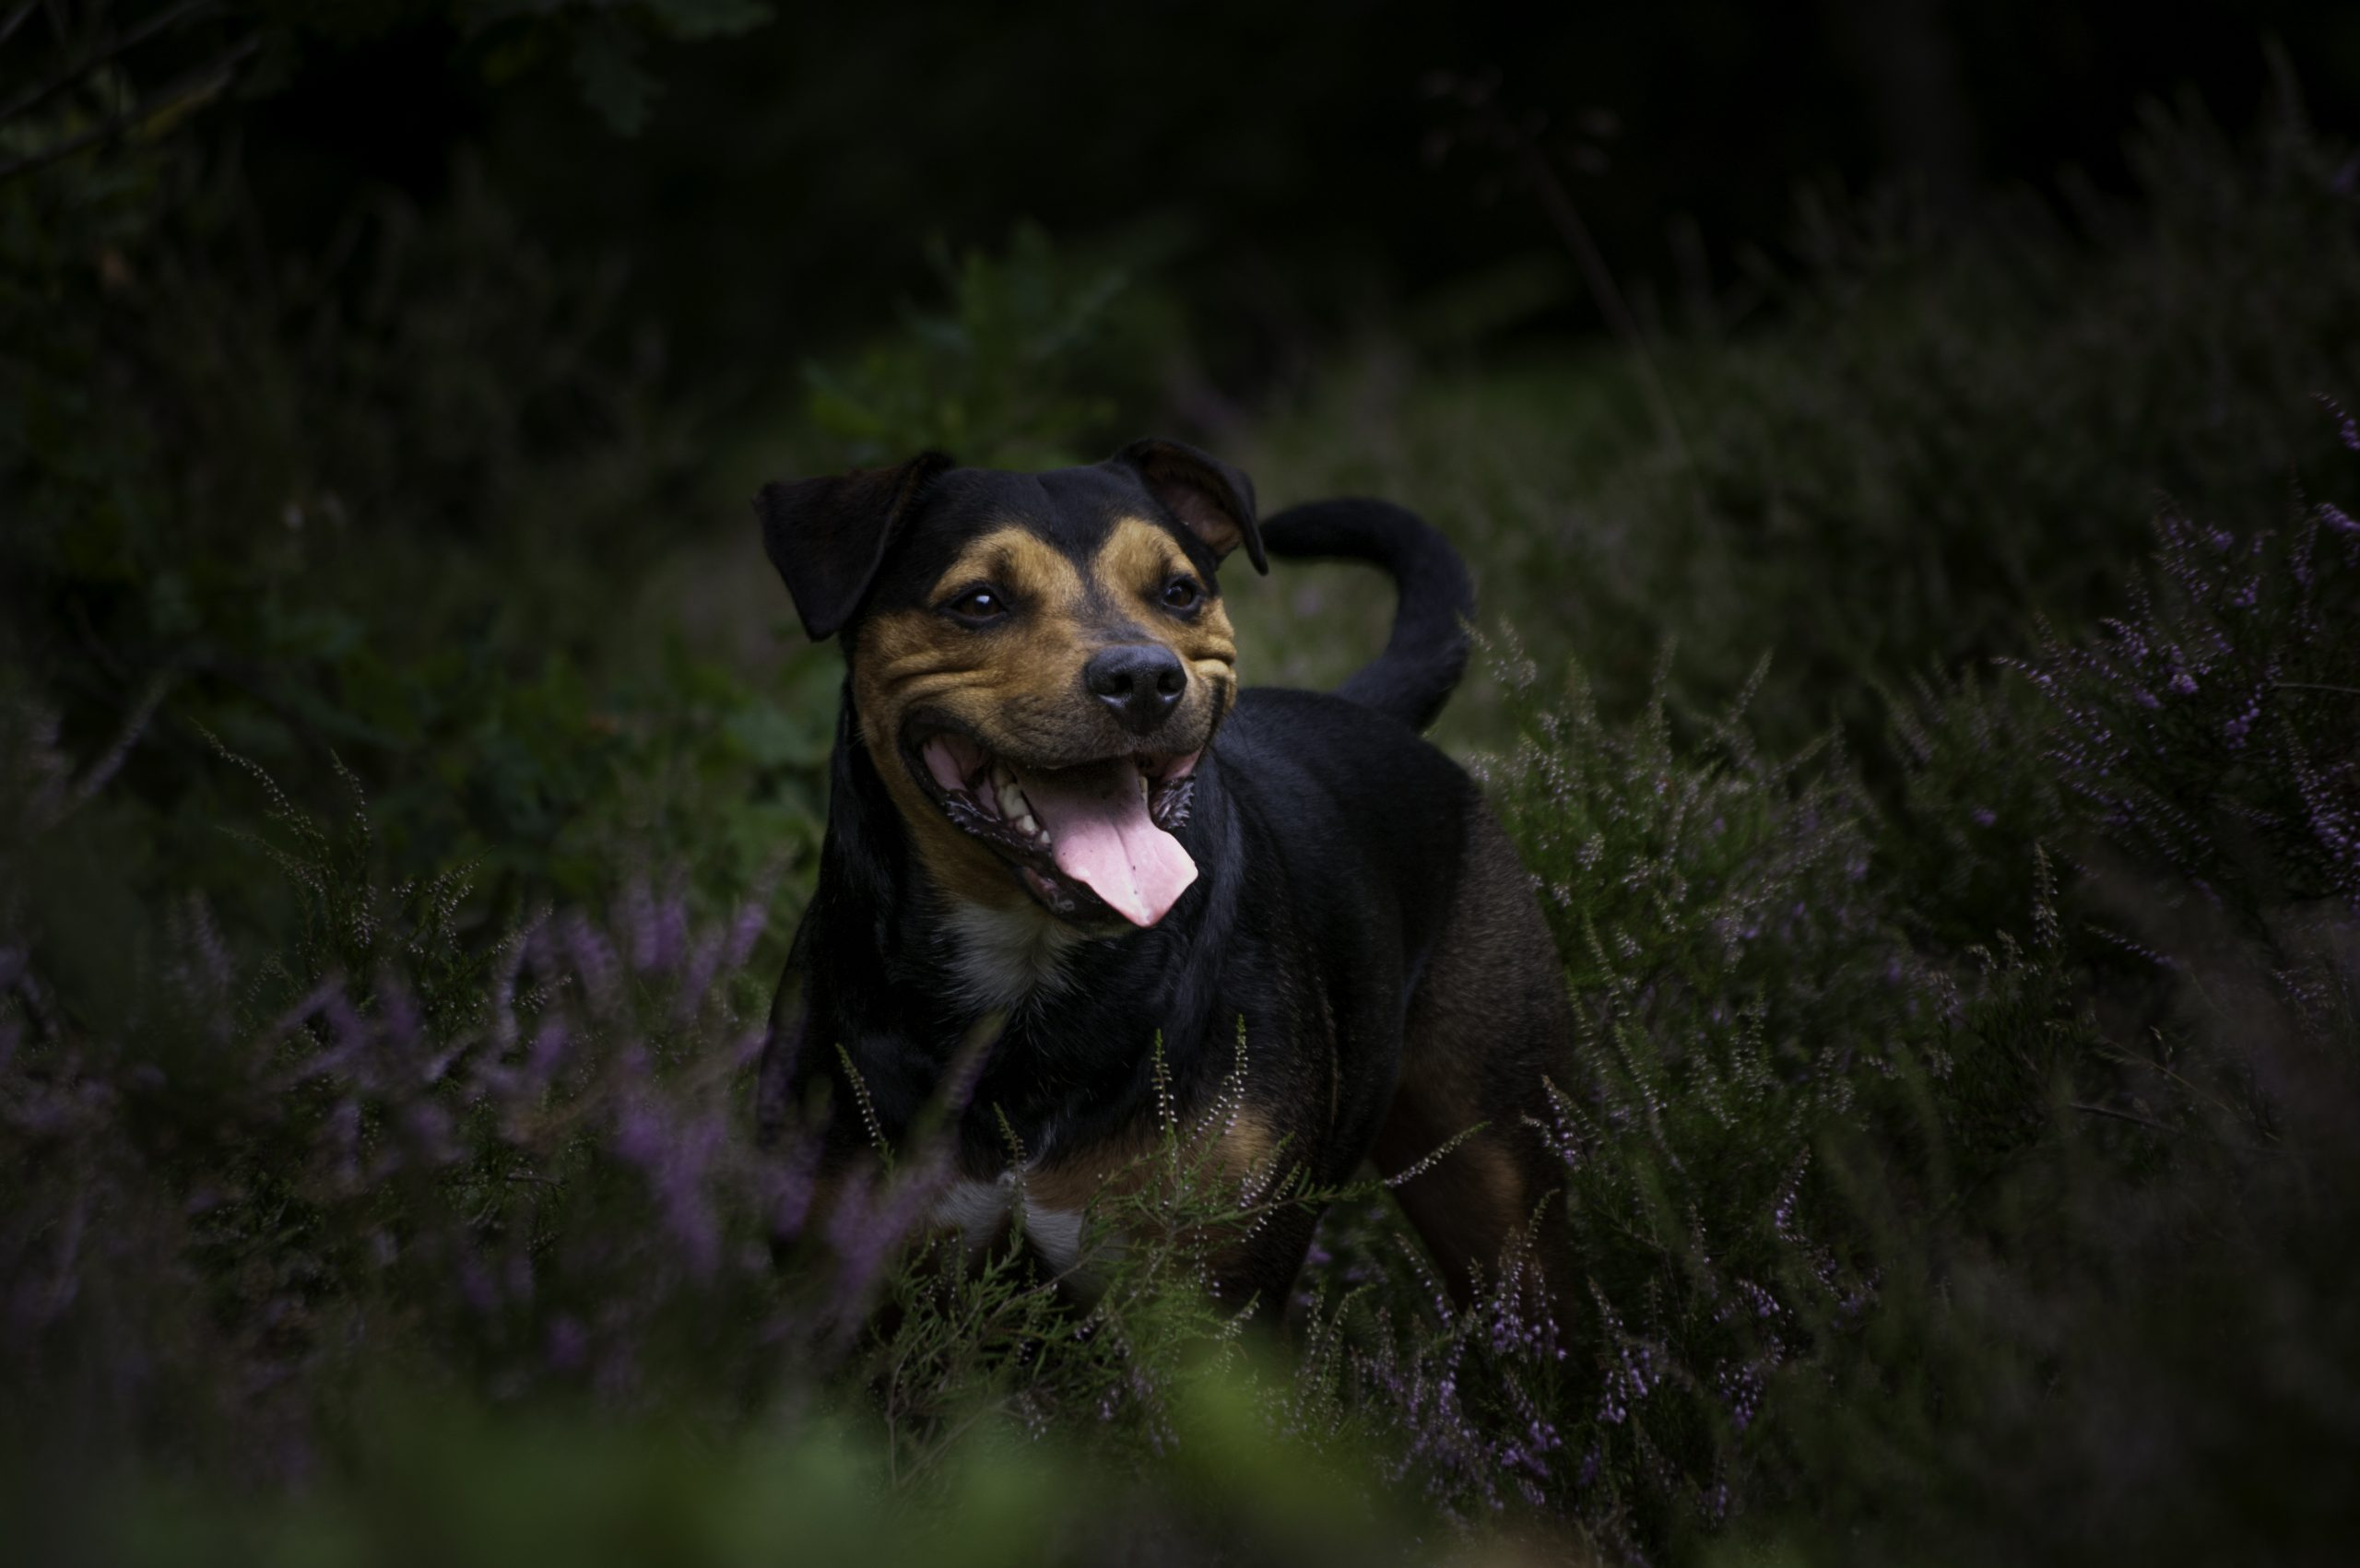 A day shooting dogs, mogs and sprogs